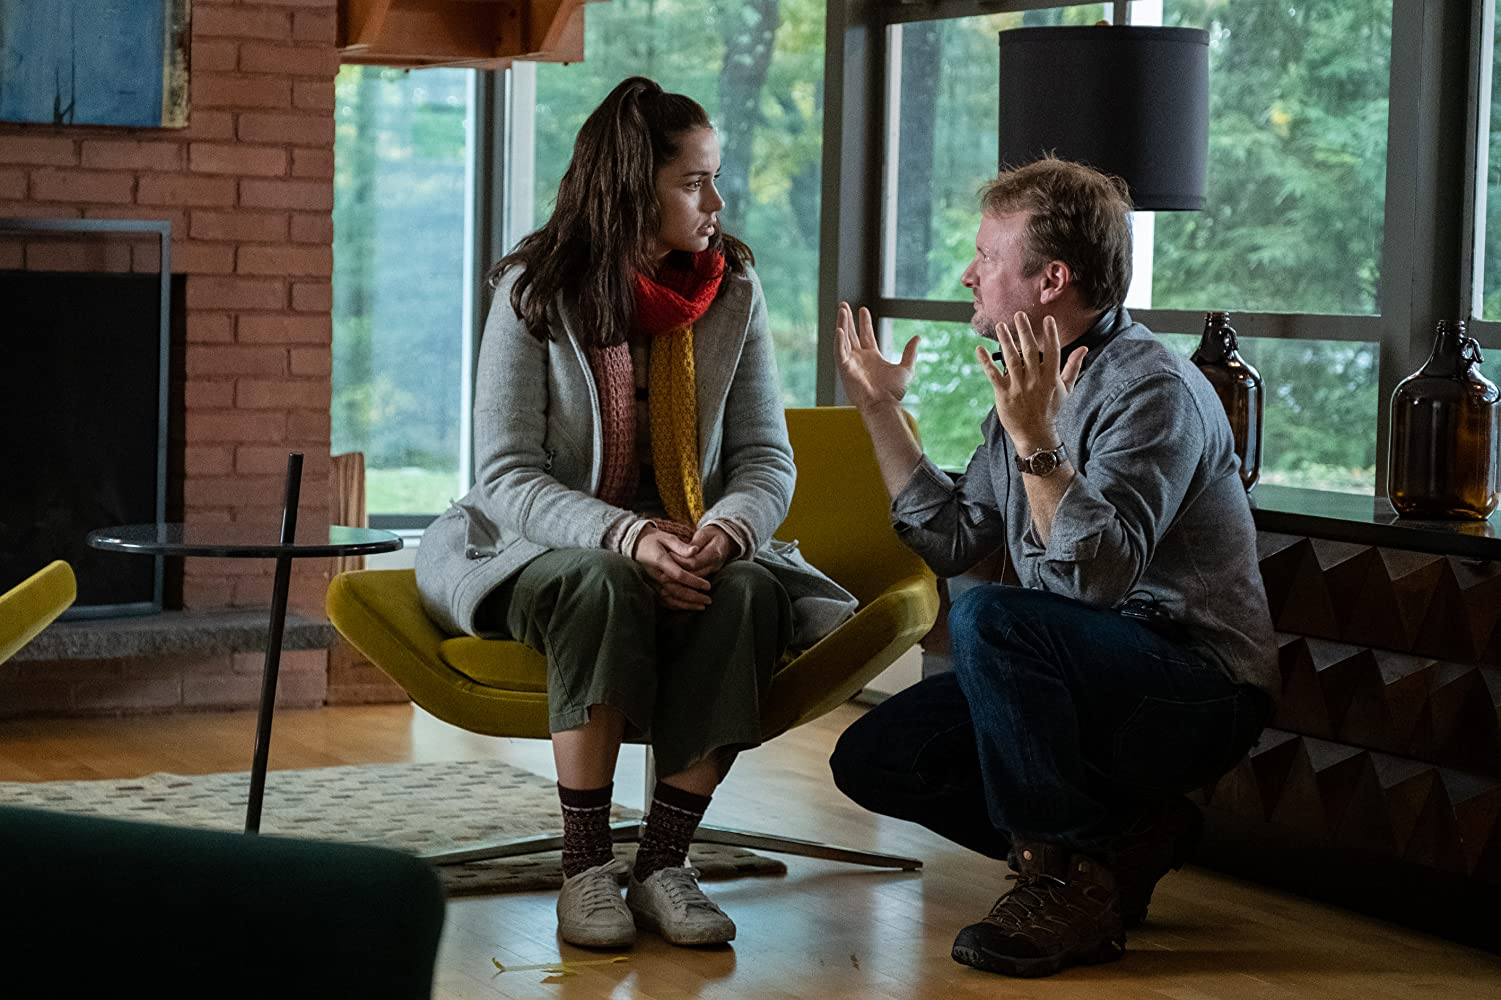 Rian Johnson and Ana de Armas in Knives Out (2019)